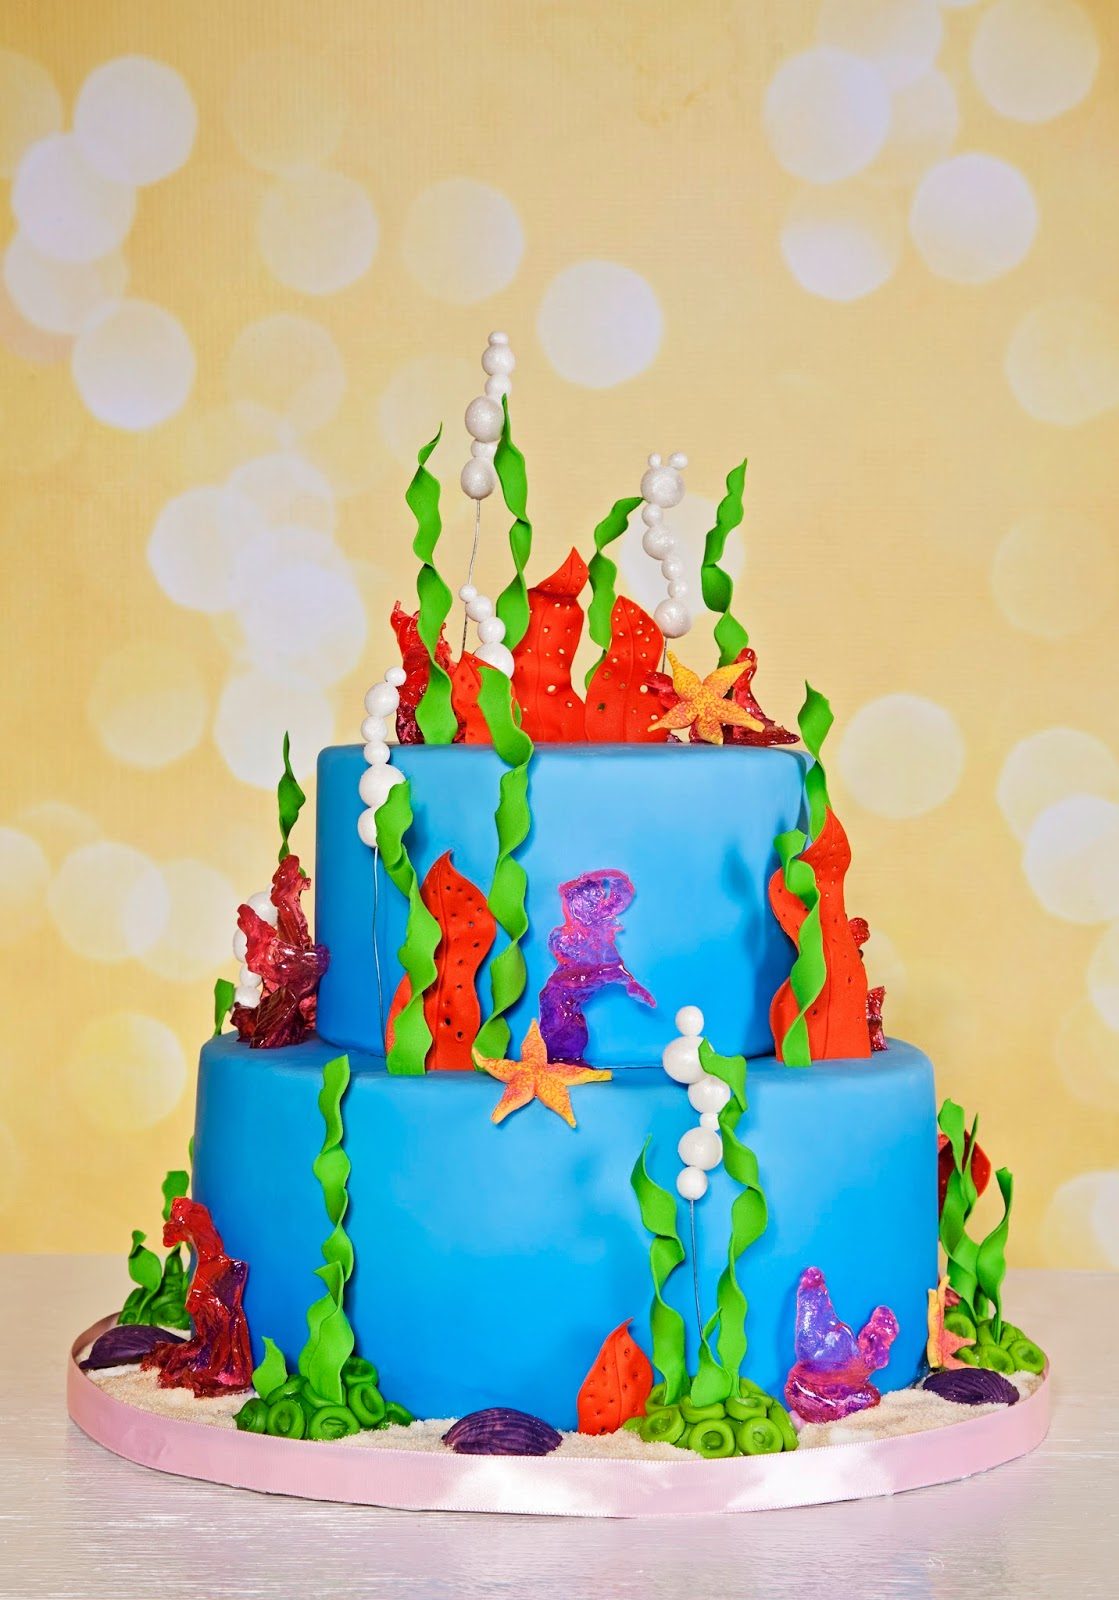 Delectable Cakes Under The Sea Little Mermaid Birthday Cake